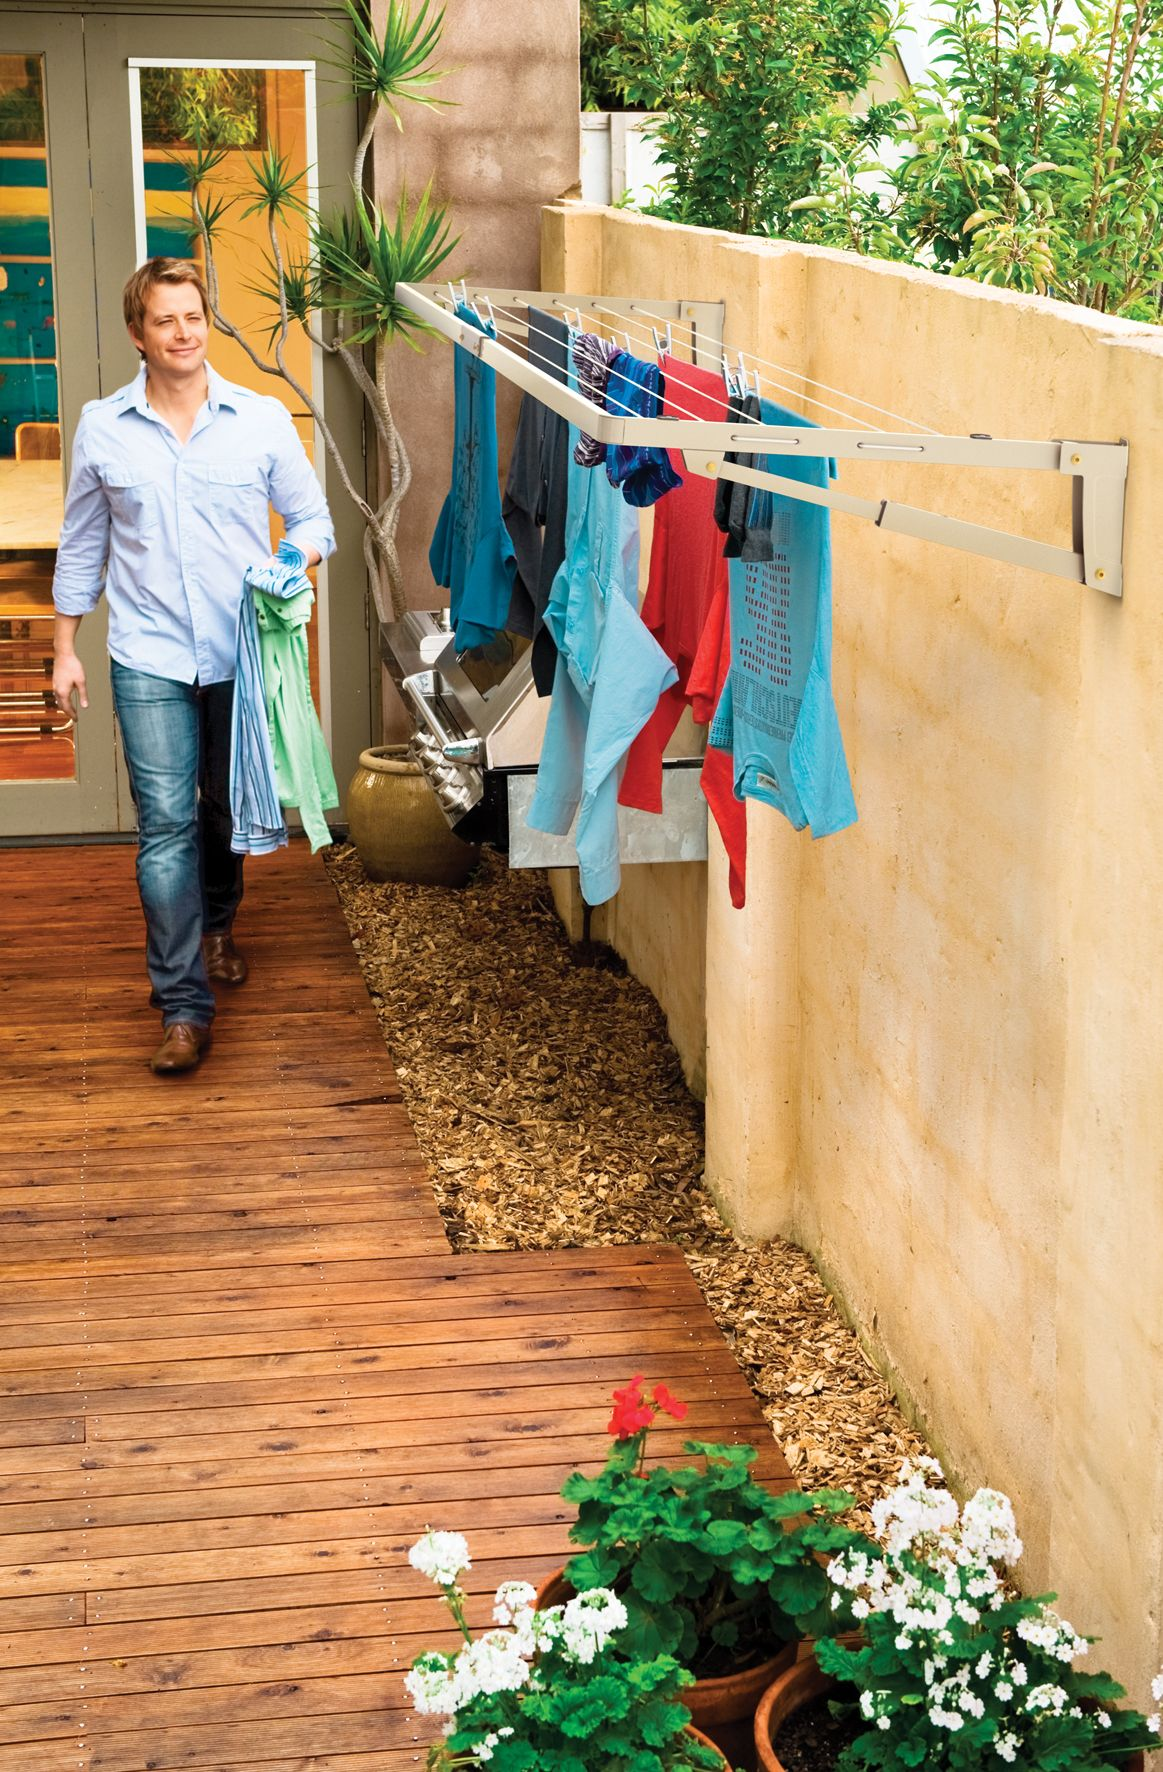 Good Supa Fold Compact Line: Hills Clothesline Products: Retractable Clotheslines,  Rotary Clotheslines, Clothes